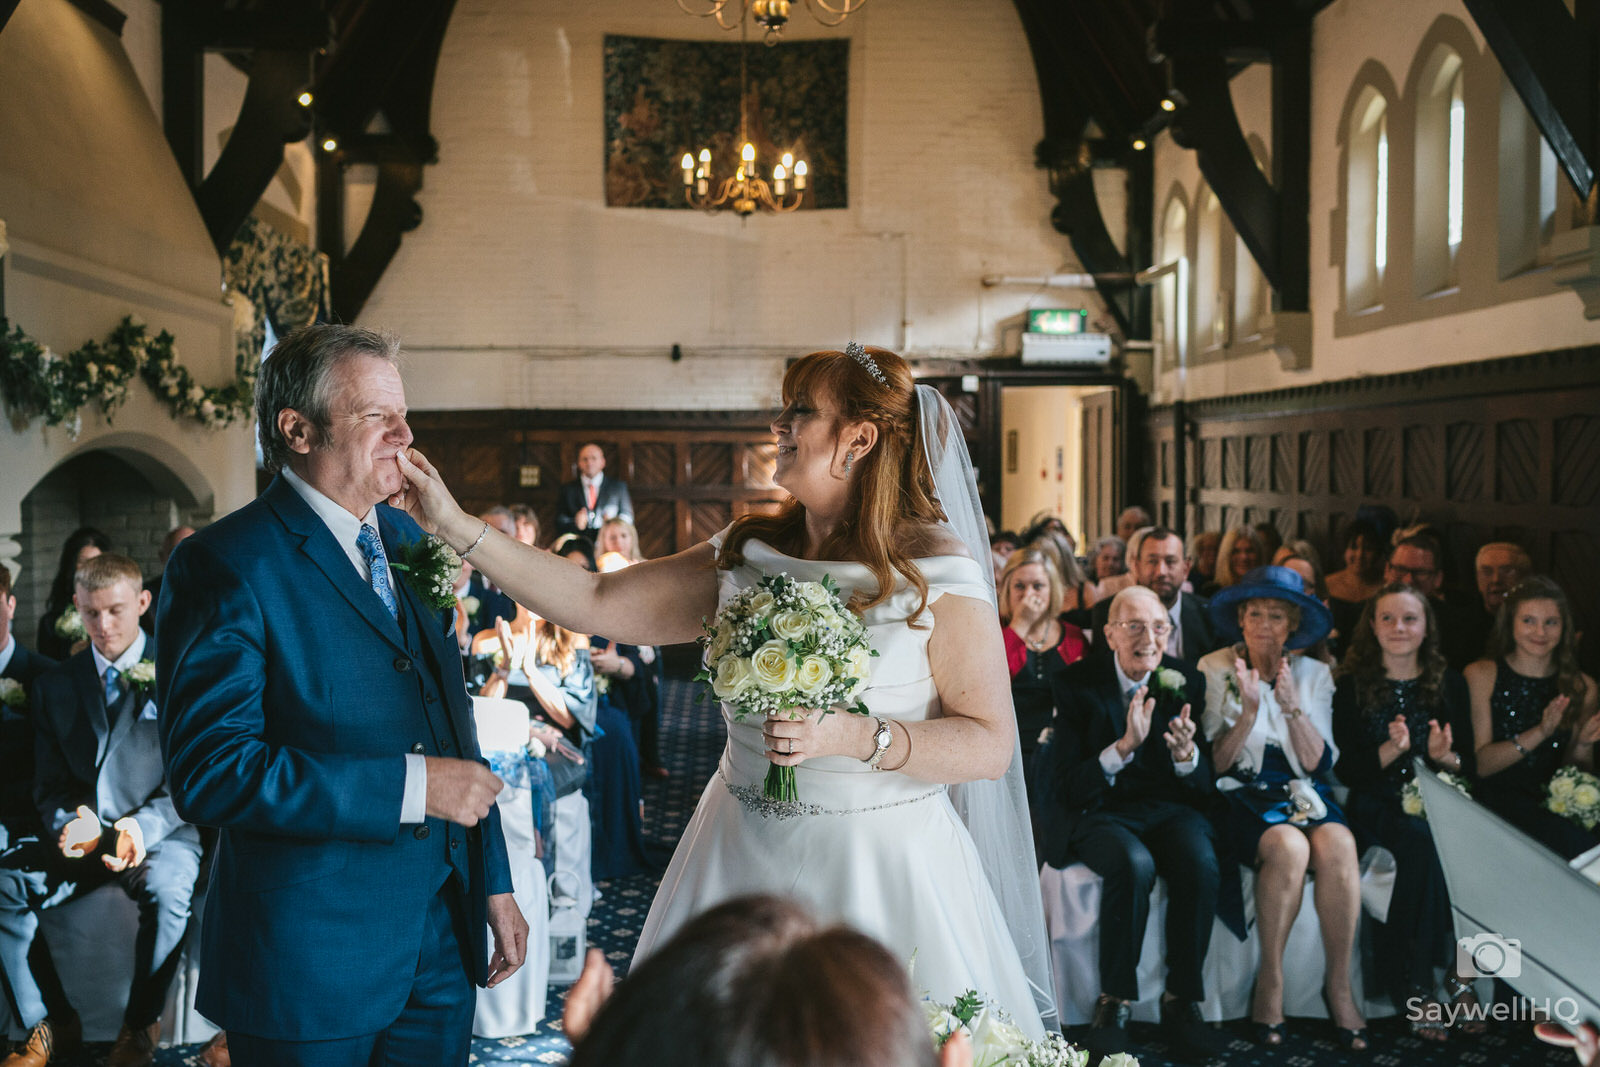 Wedding Photography at Bridgford Hall in West Bridgford Nottingham - Candid Wedding Photography